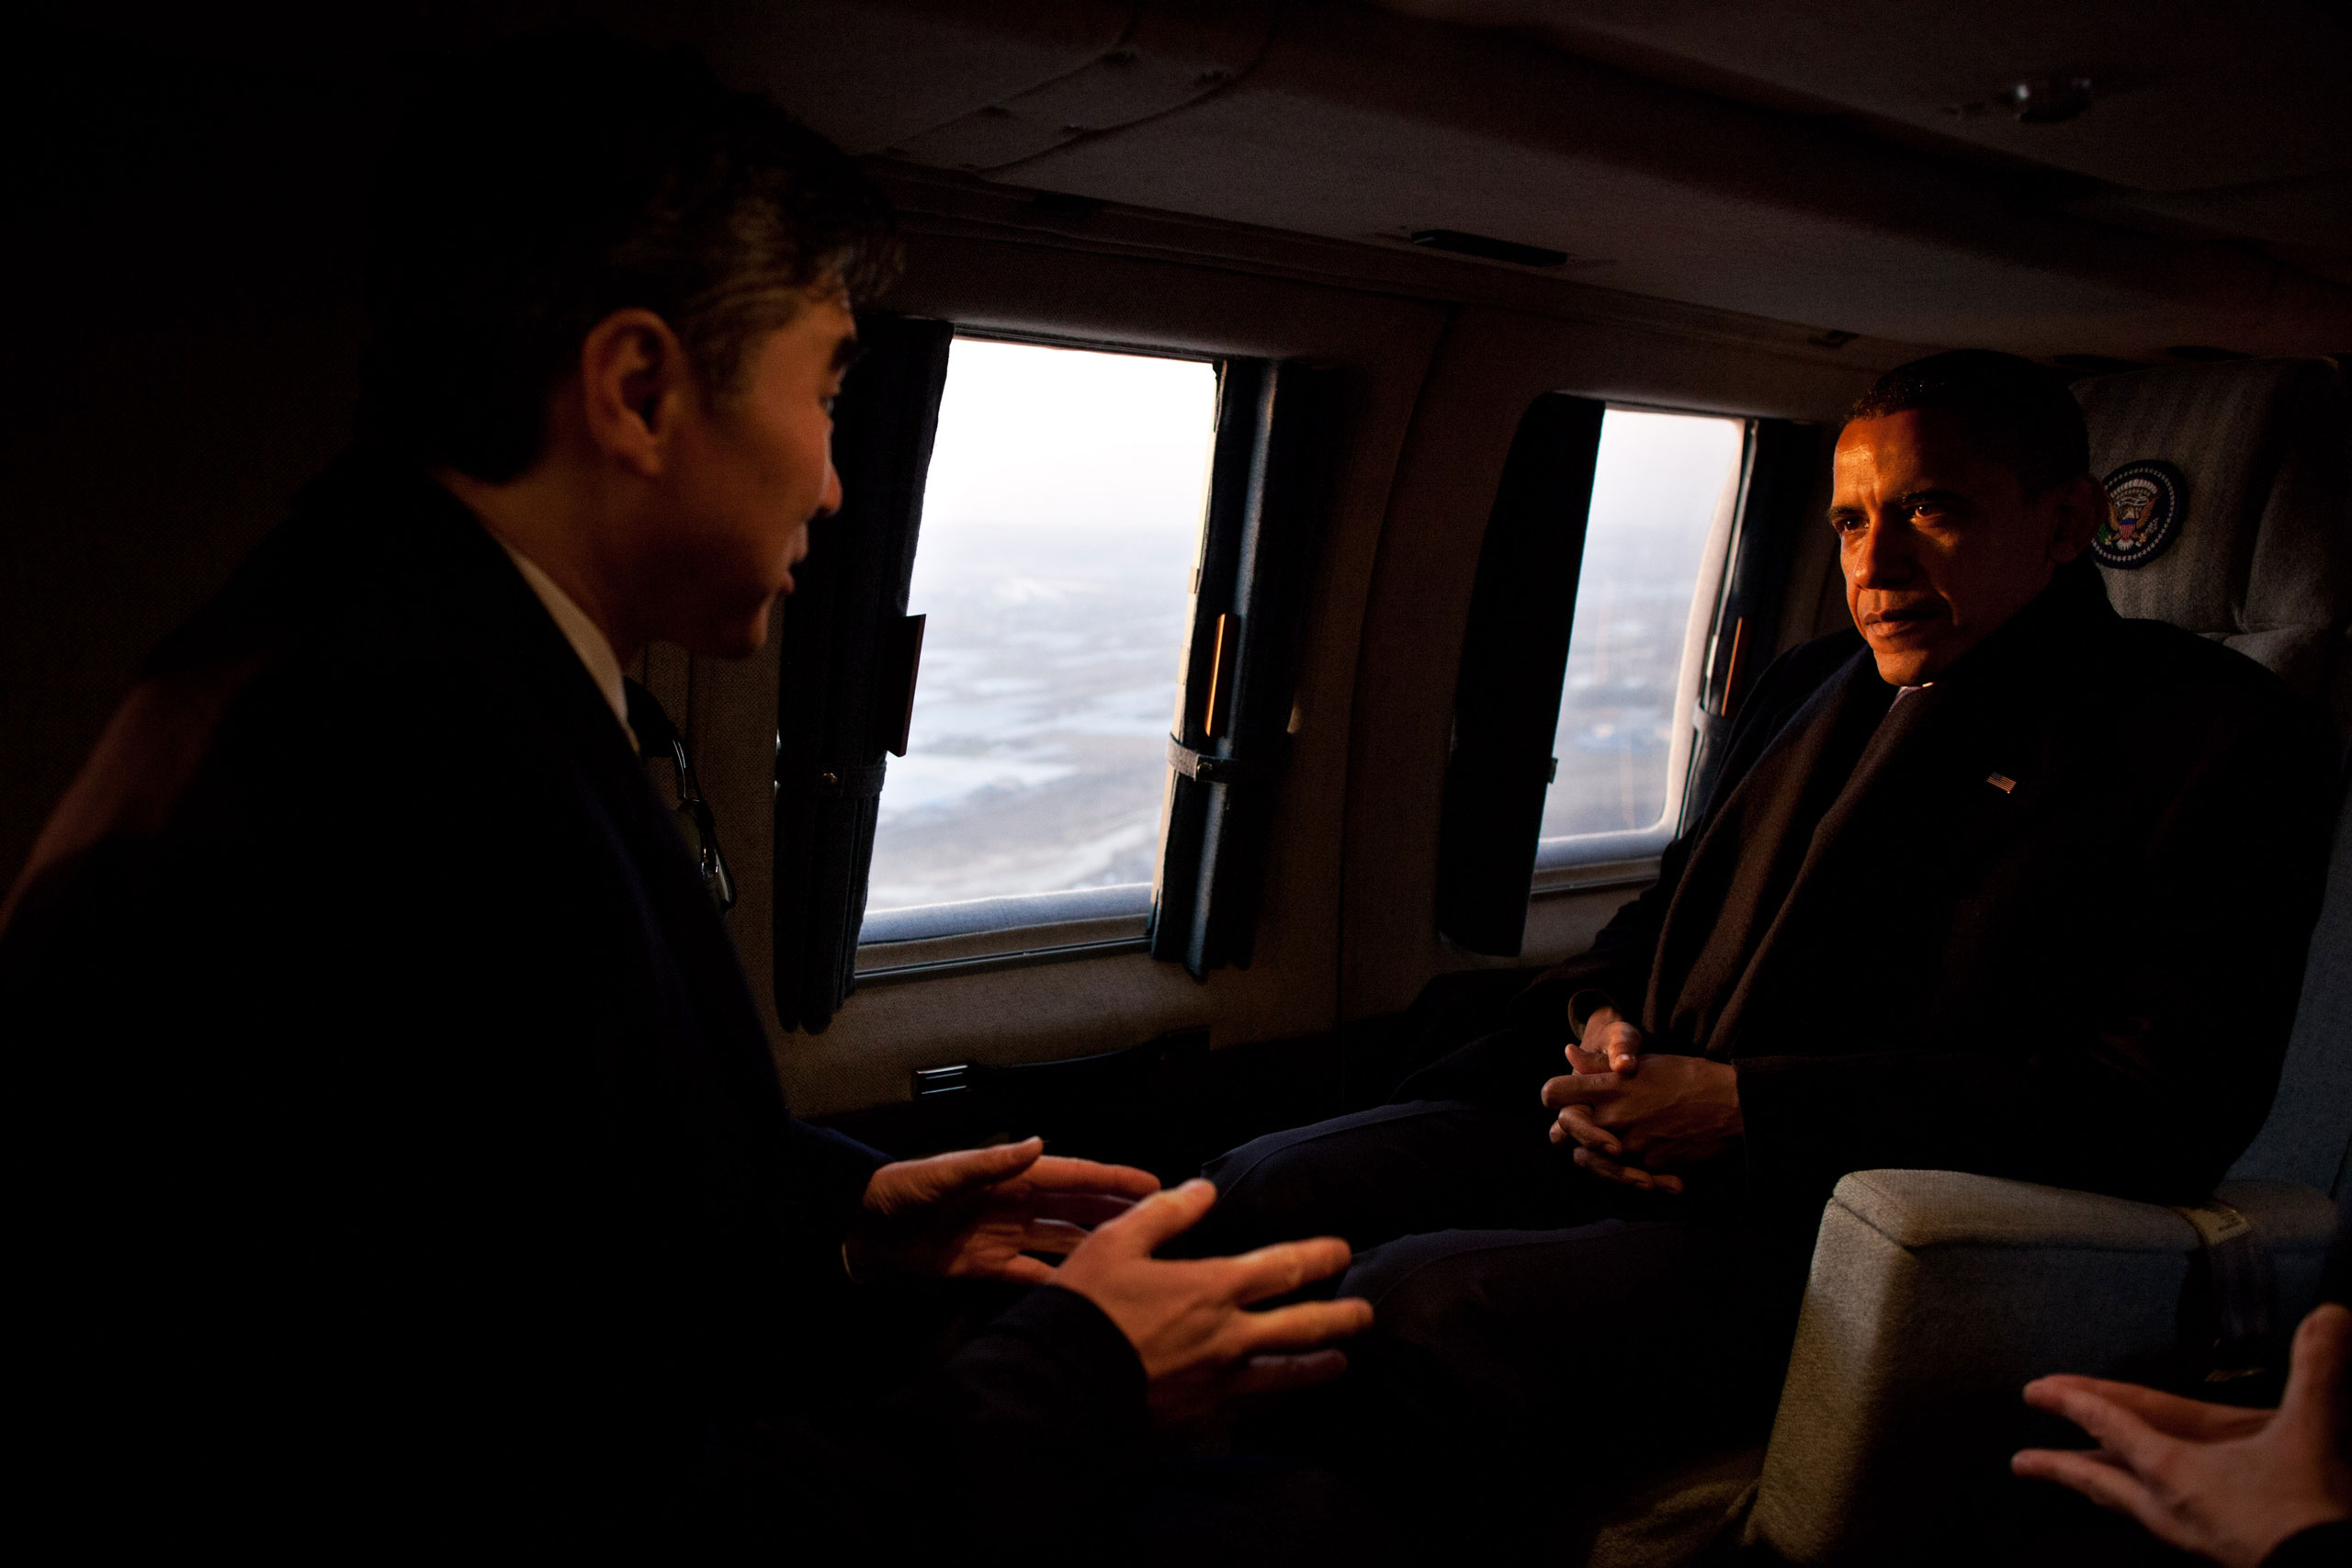 President Barack Obama talks with Sung Kim, U.S. Ambassador to Republic of Korea, aboard Marine One during an early morning flight from Osan Air Base to the landing zone at U.S. Army Garrison Yongsan in Seoul, Republic of Korea, March 25, 2012.